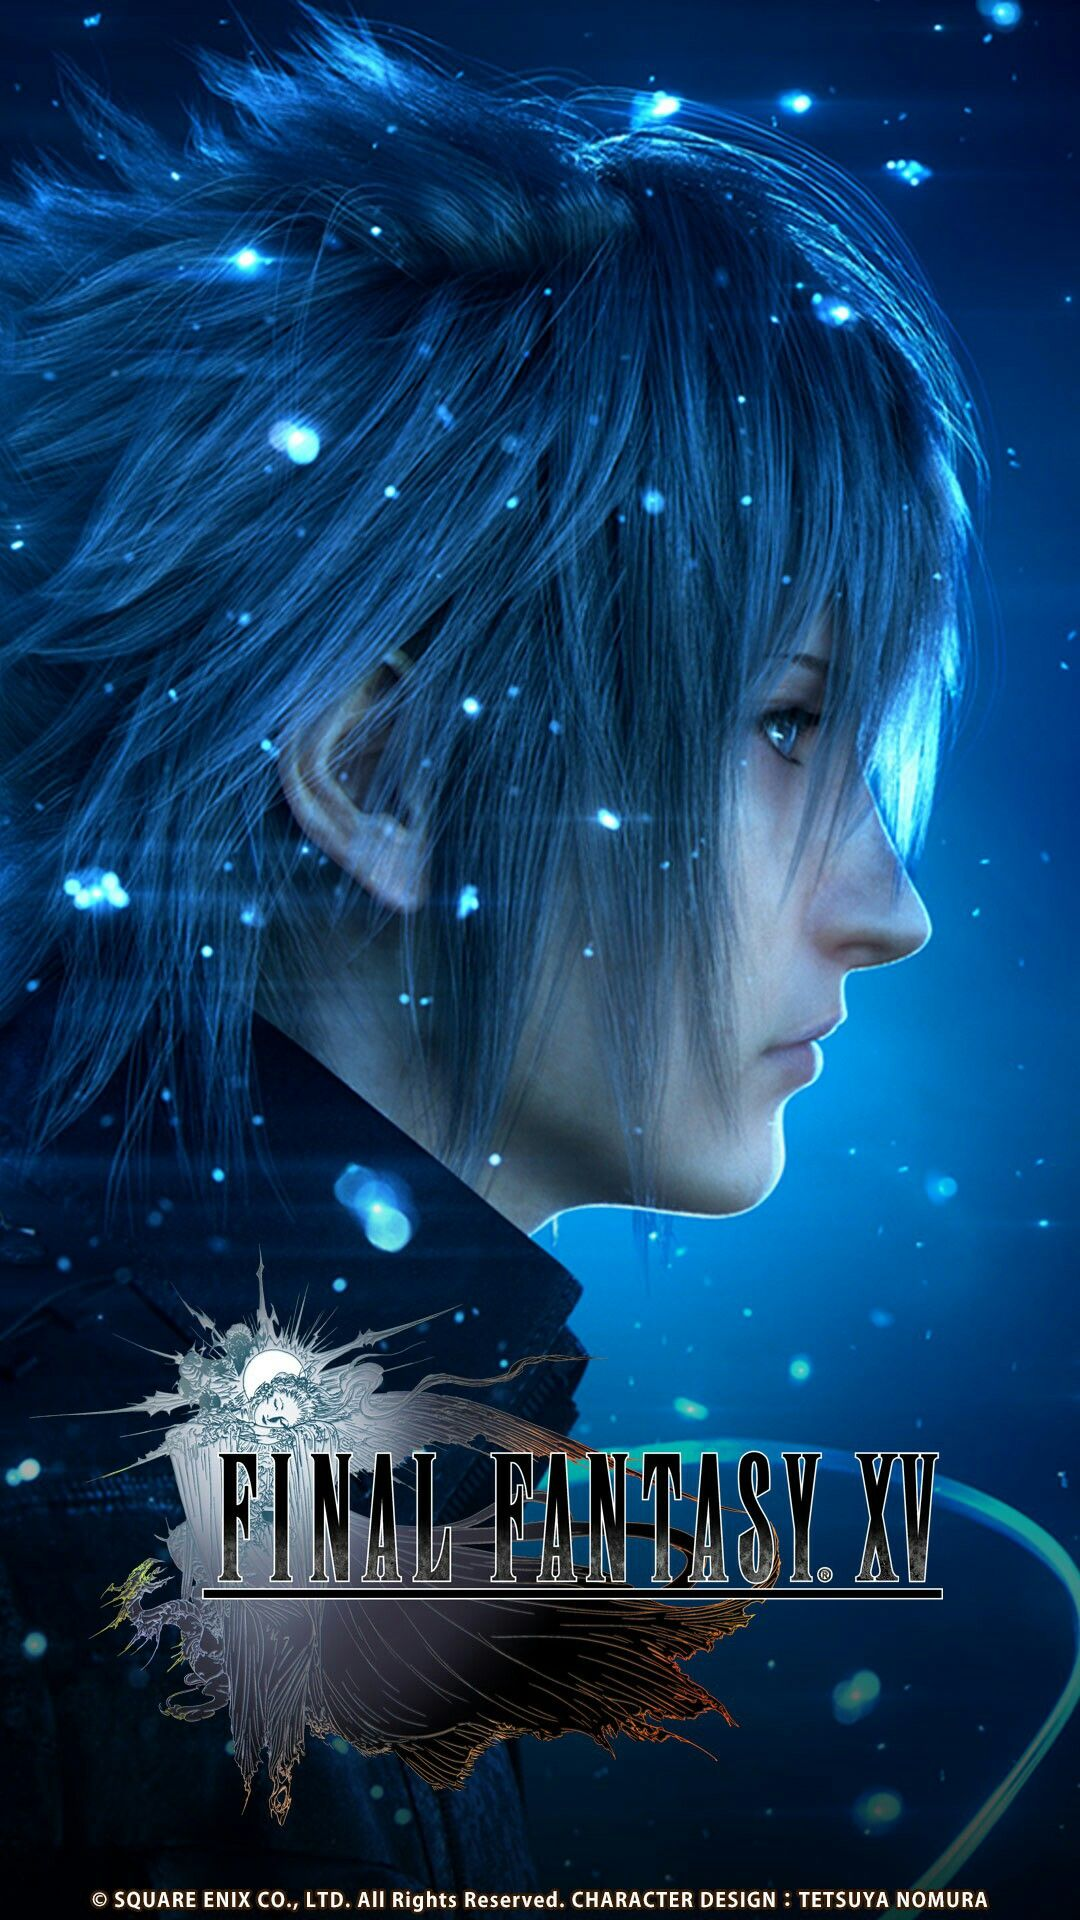 Noctis | Prince Noctis L Caelum and anything Final Fantasy | Noctis final fantasy, Final Fantasy ...